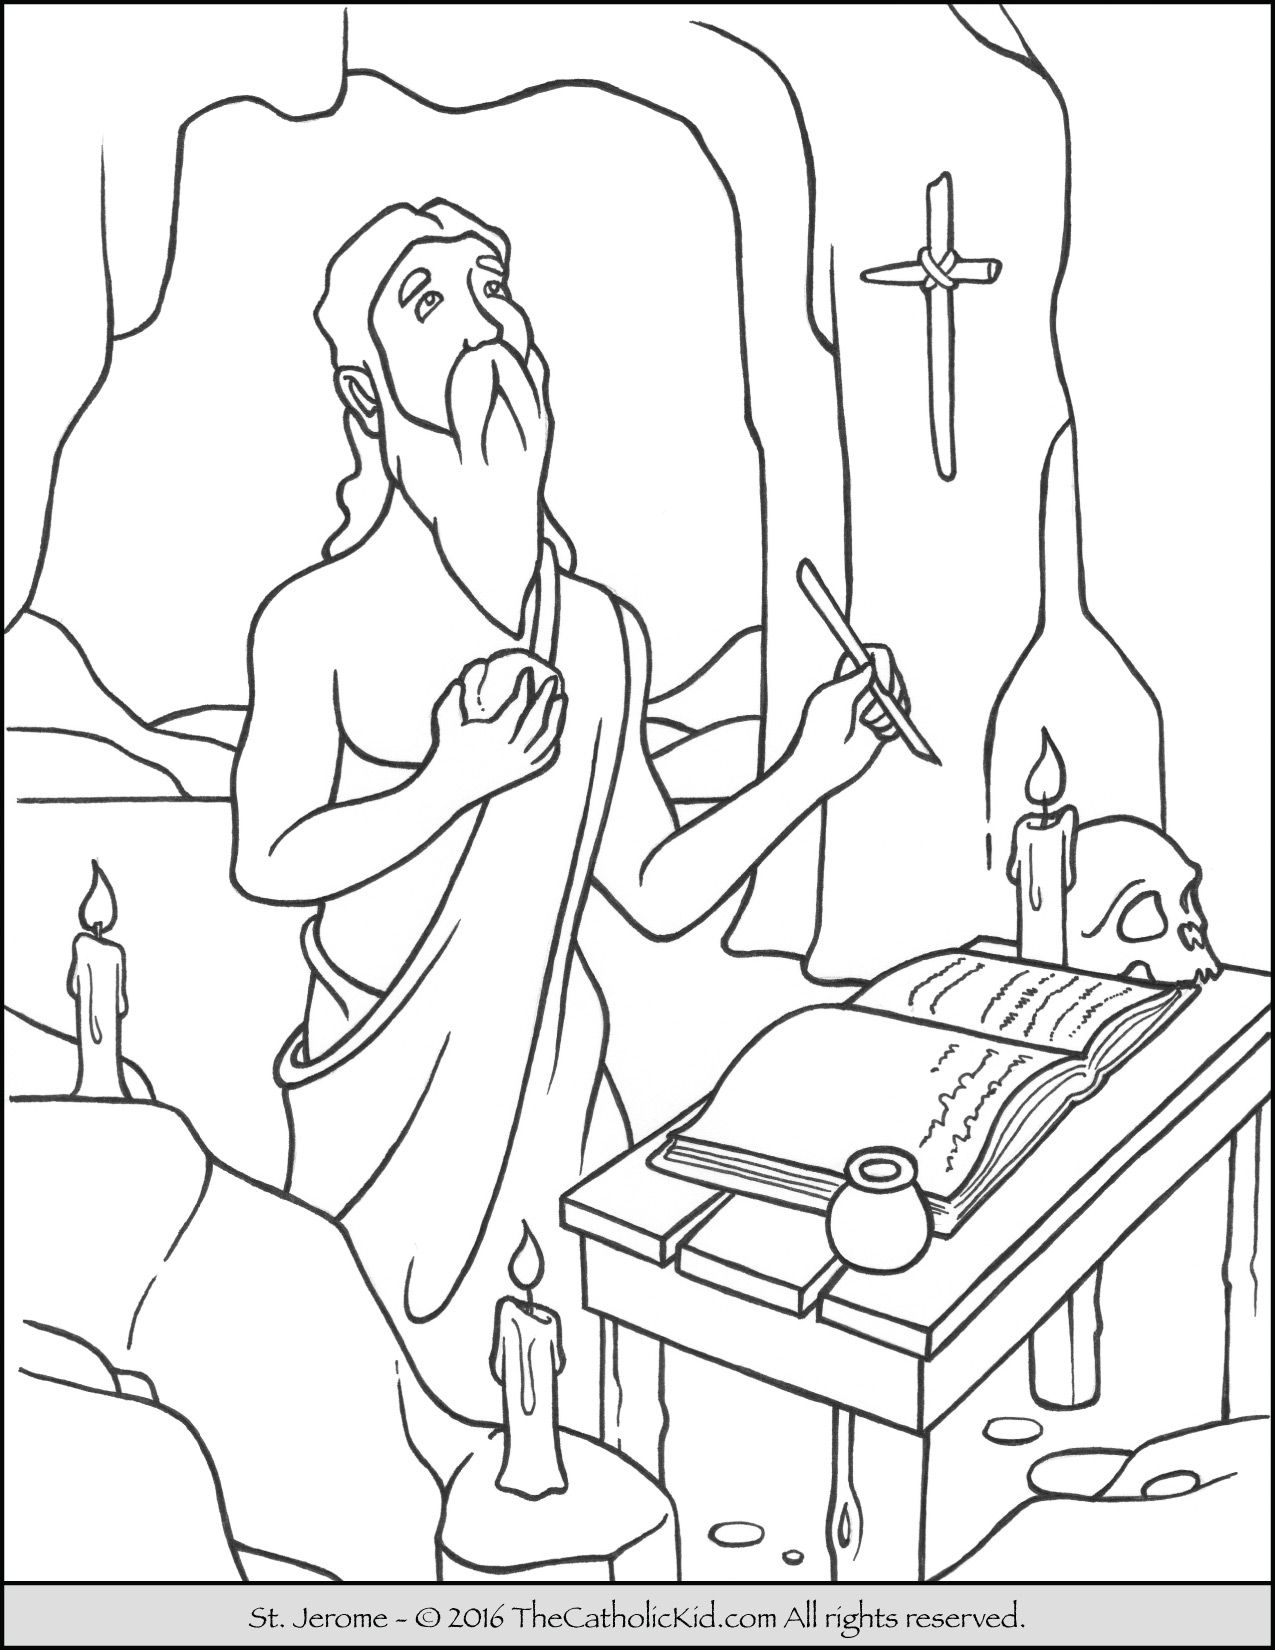 Coloring Page Of Saint Jerome Beating His Chest With A